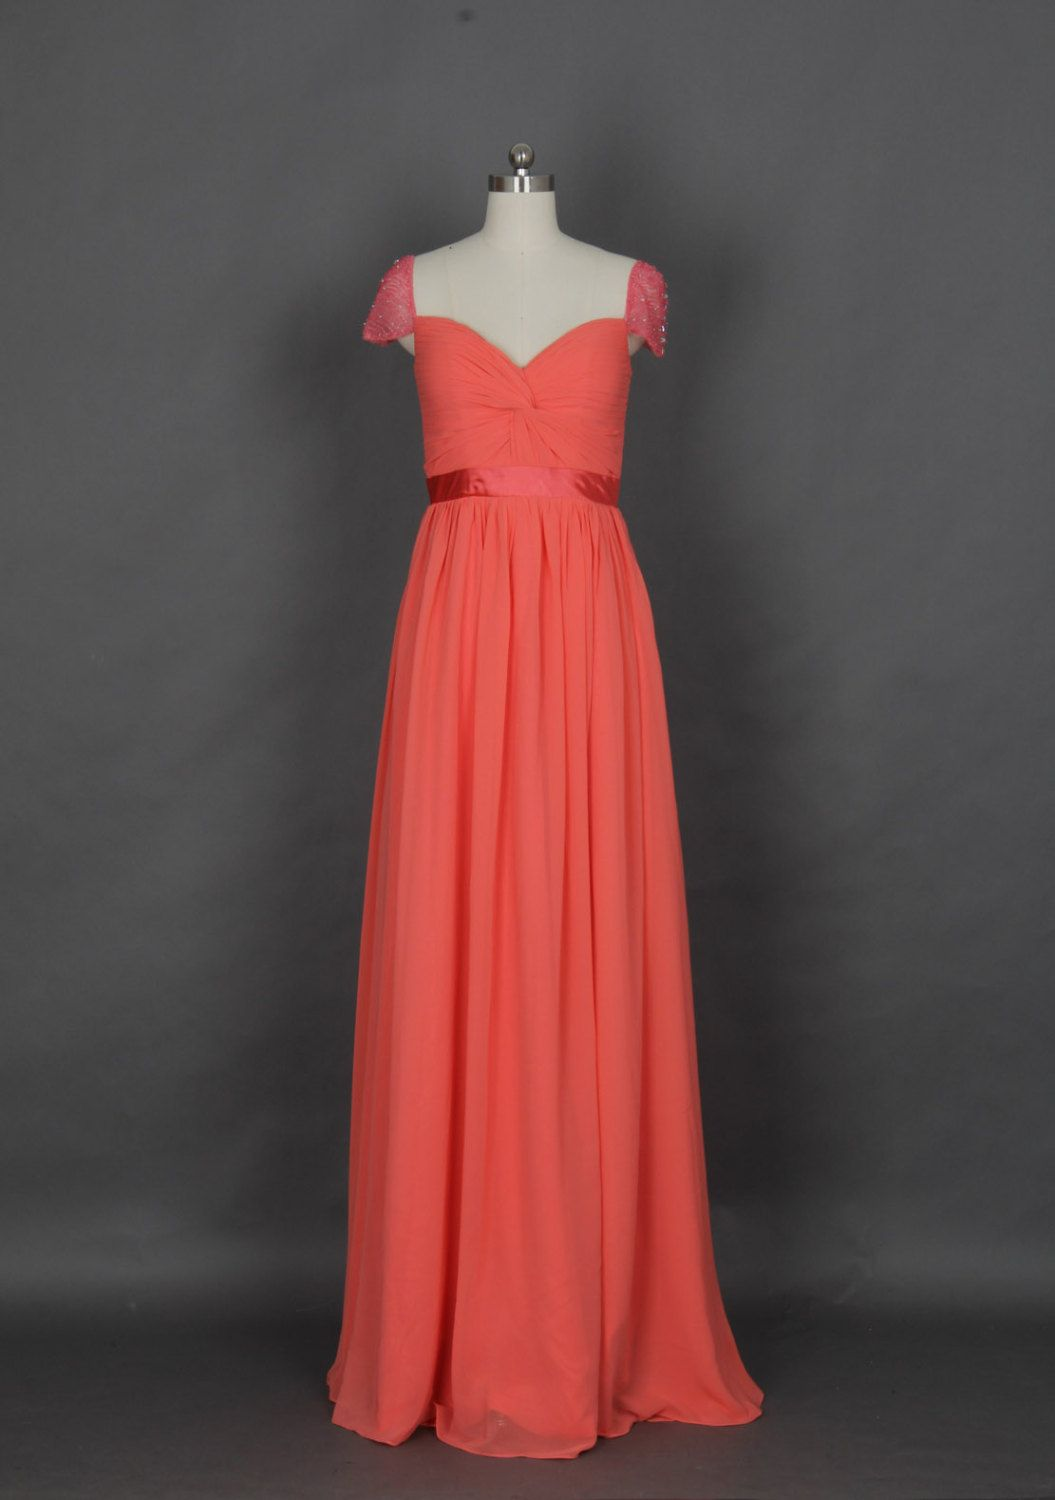 Beaded Cap Sleeves Coral Long Prom Dress, Red Prom Dress. $135.00, via Etsy.